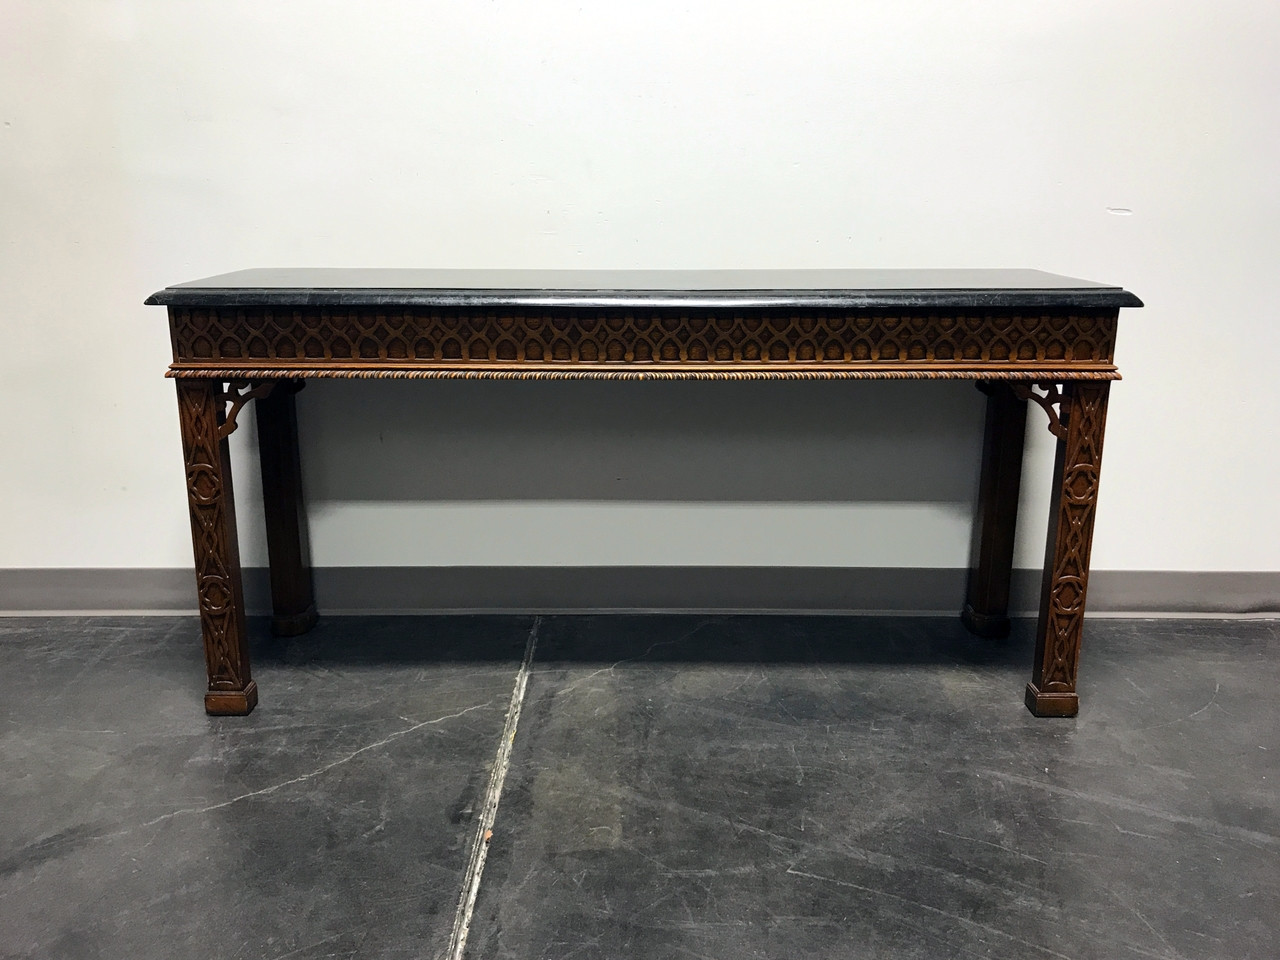 Sold out vintage carved mahogany tessellated marble sofa table sold out vintage carved mahogany tessellated marble sofa table attr to maitland smith watchthetrailerfo